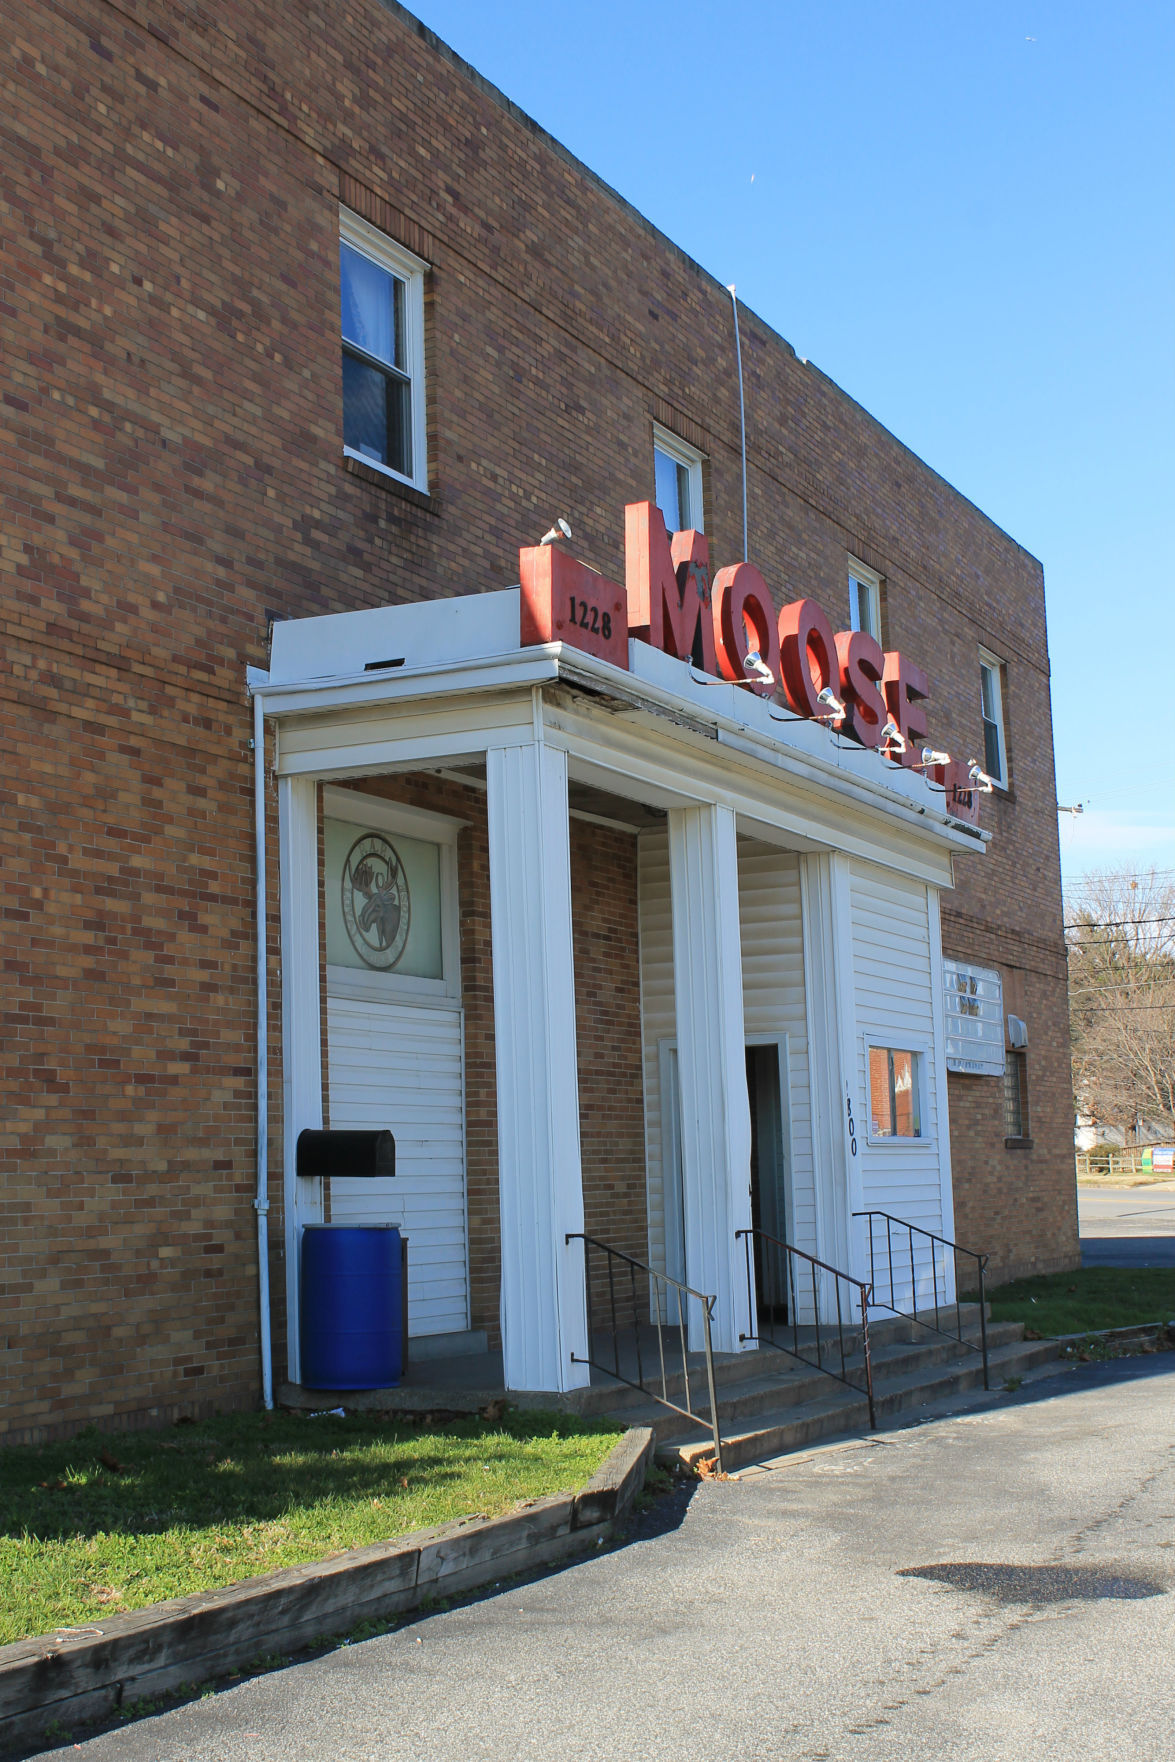 Dundalk Moose lodge headed to auction   Local News ...